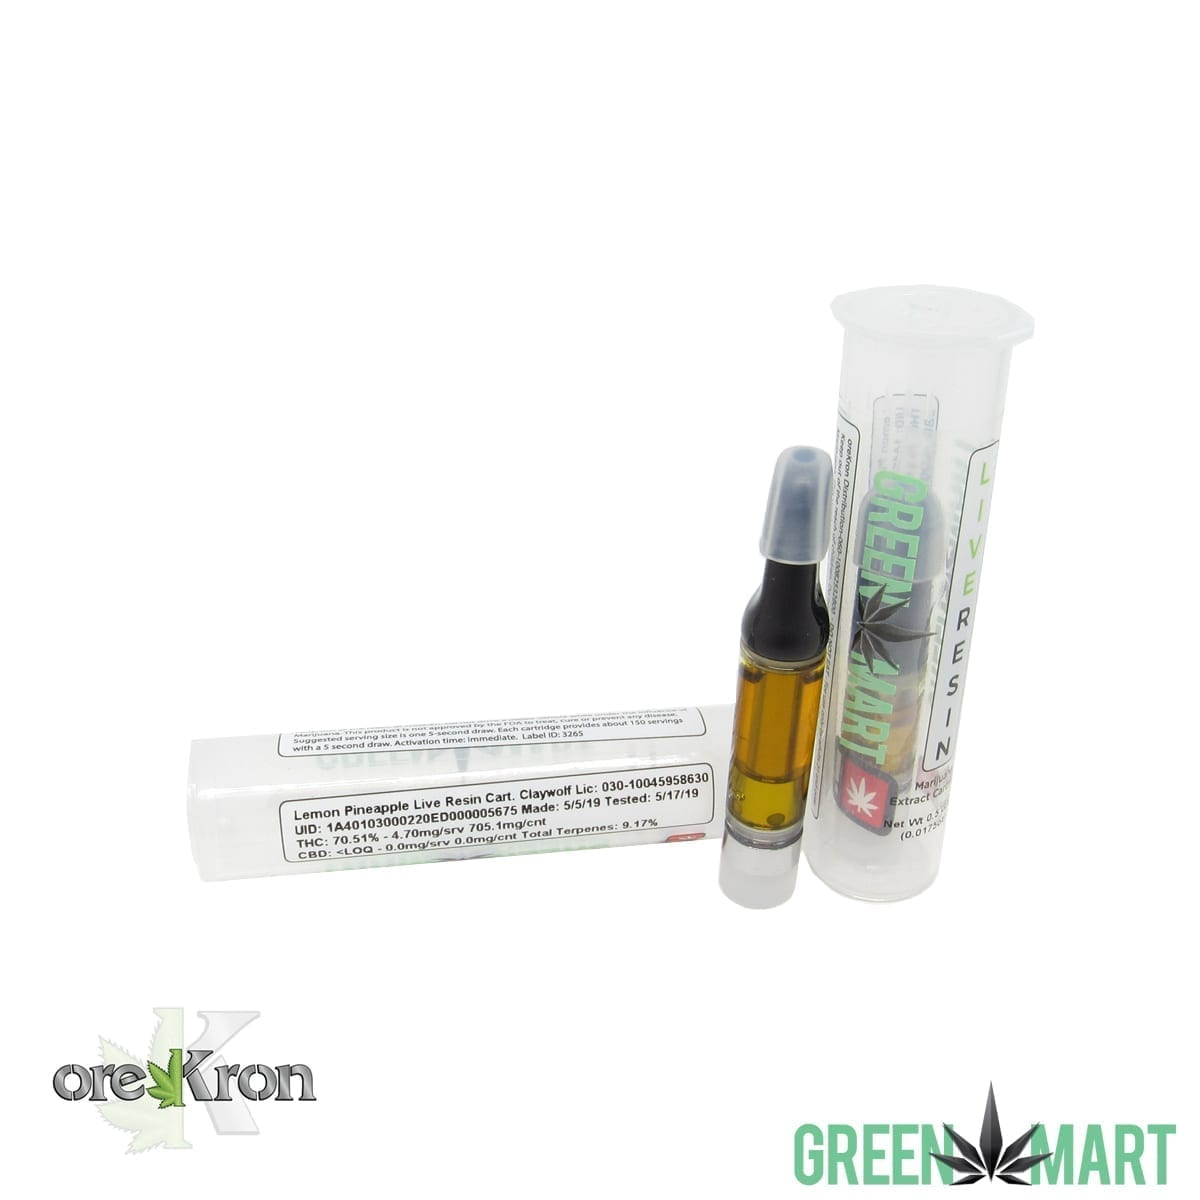 Green Mart Live Resin Cartridges – Lemon Pineapple